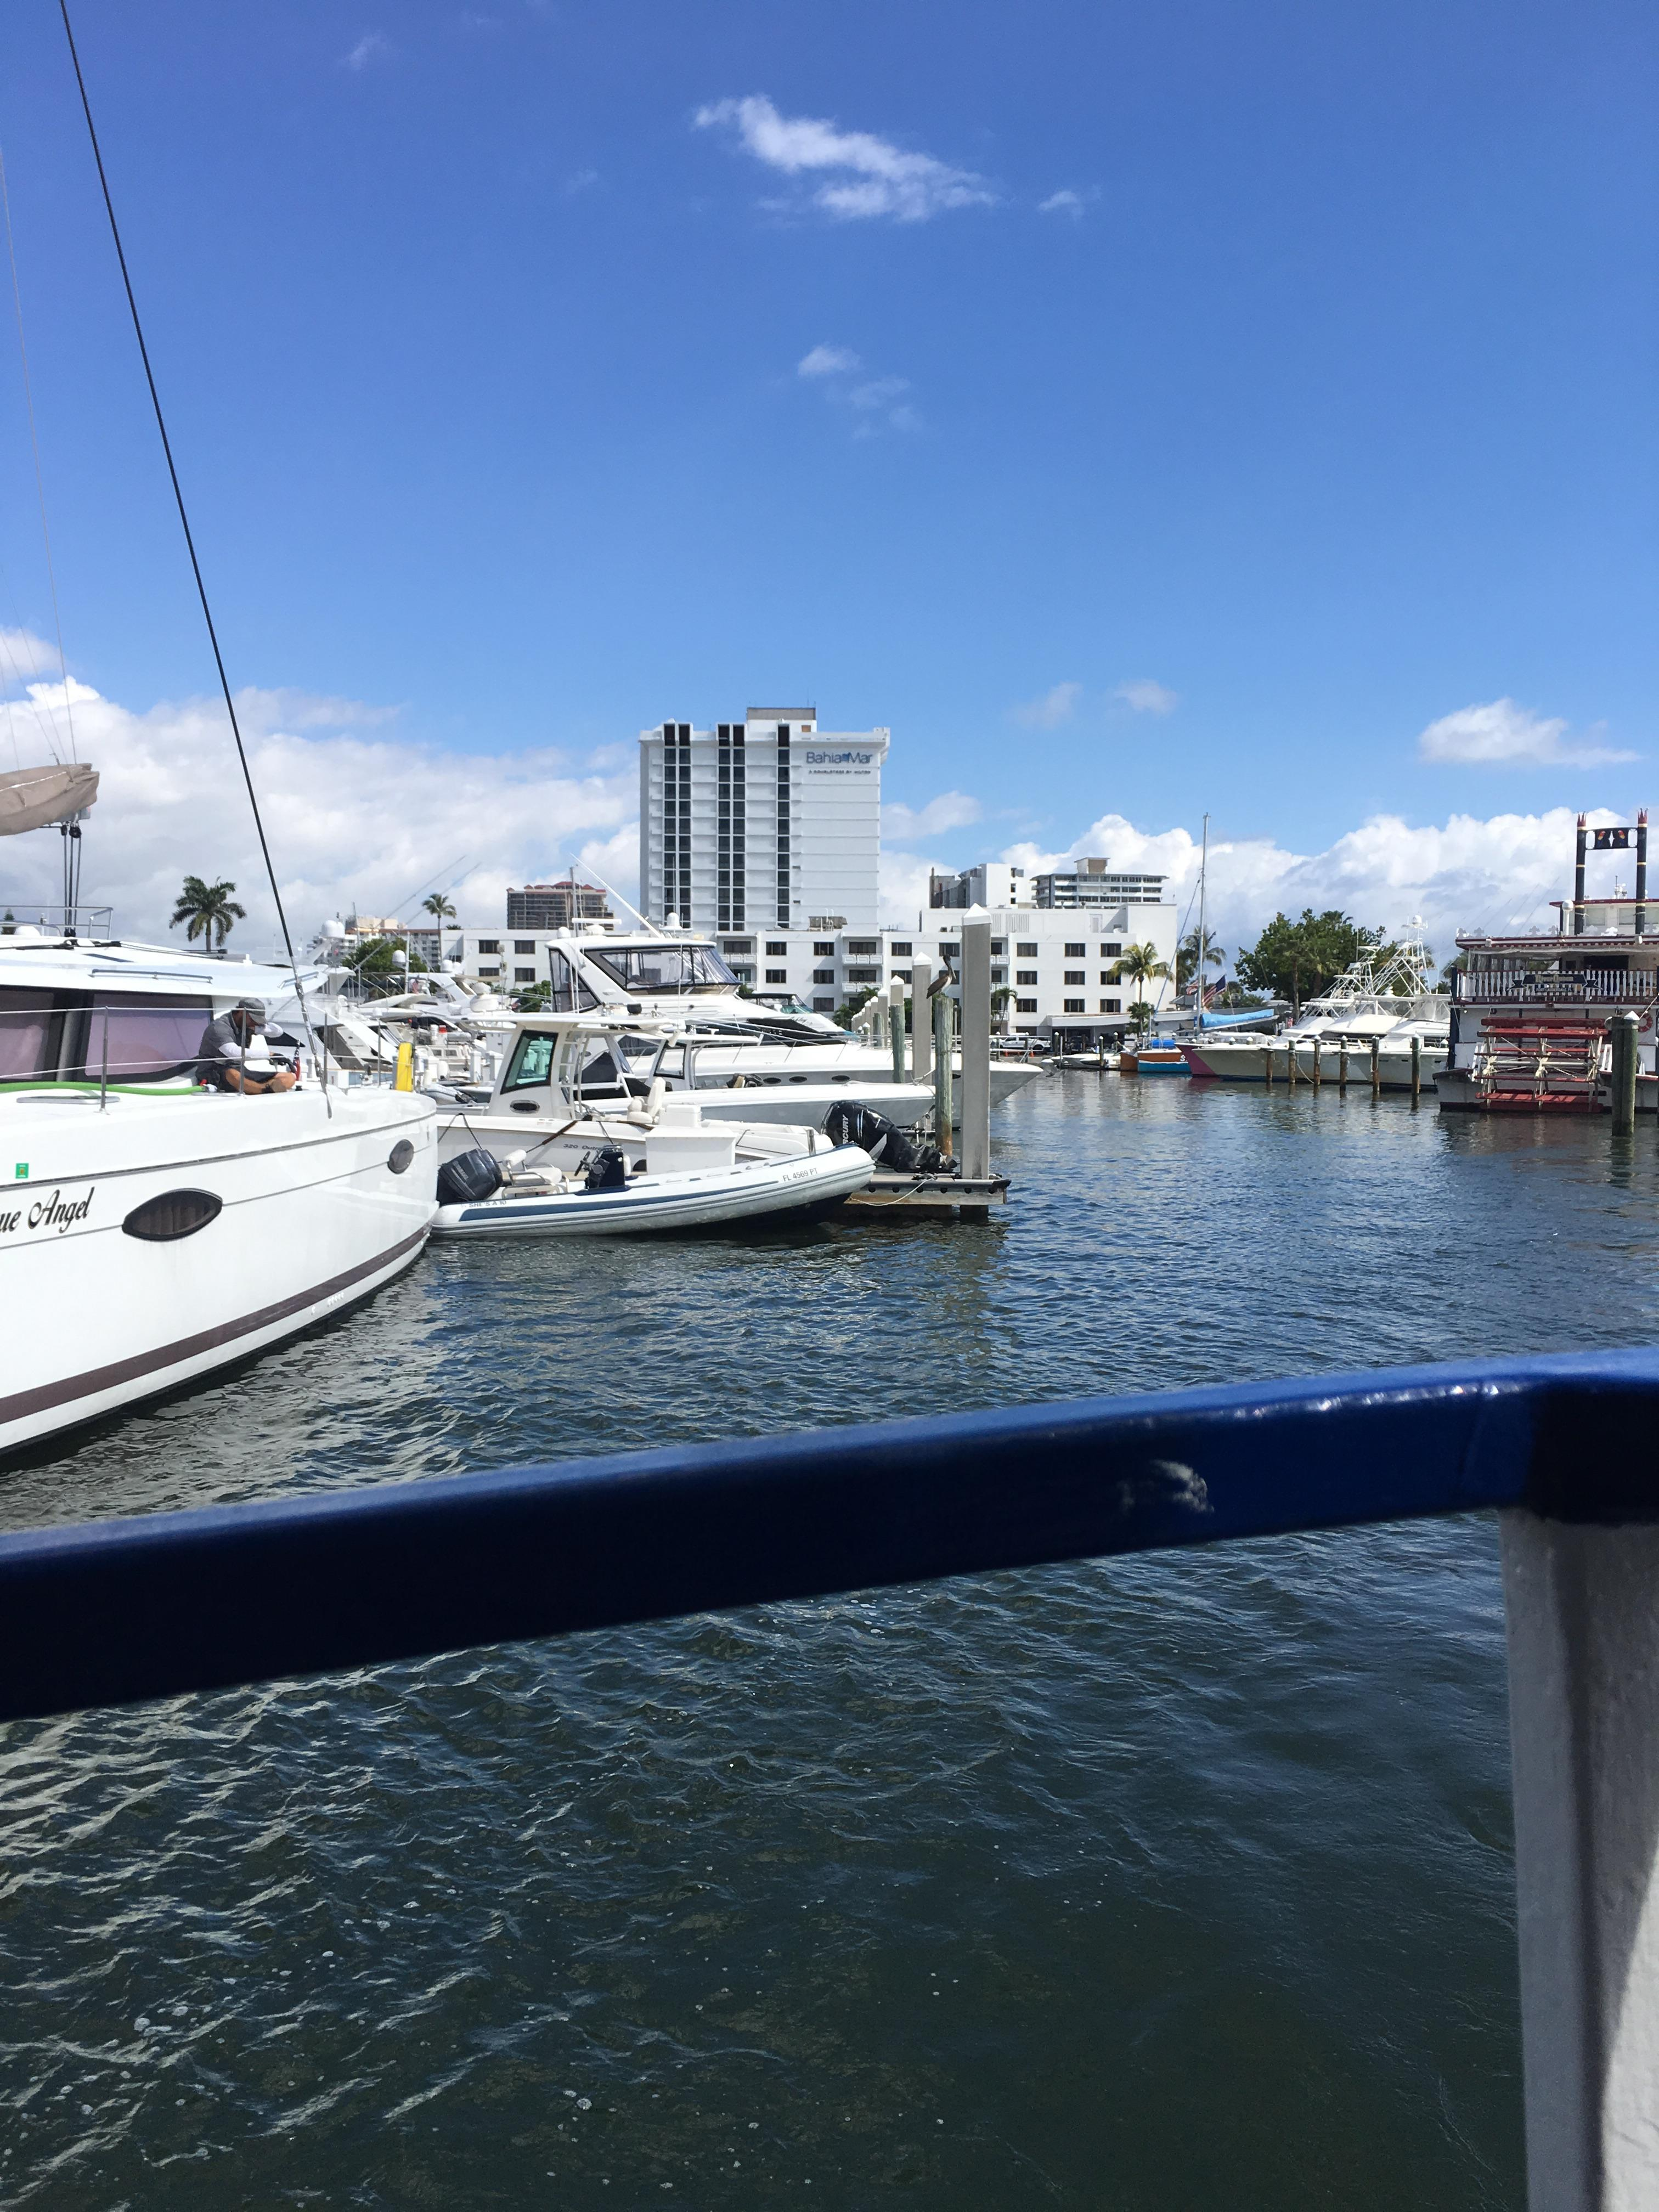 The Harbor with the Jungle Queen Riverboat Fort Lauderdale Sightseeing and Dinner Cruises